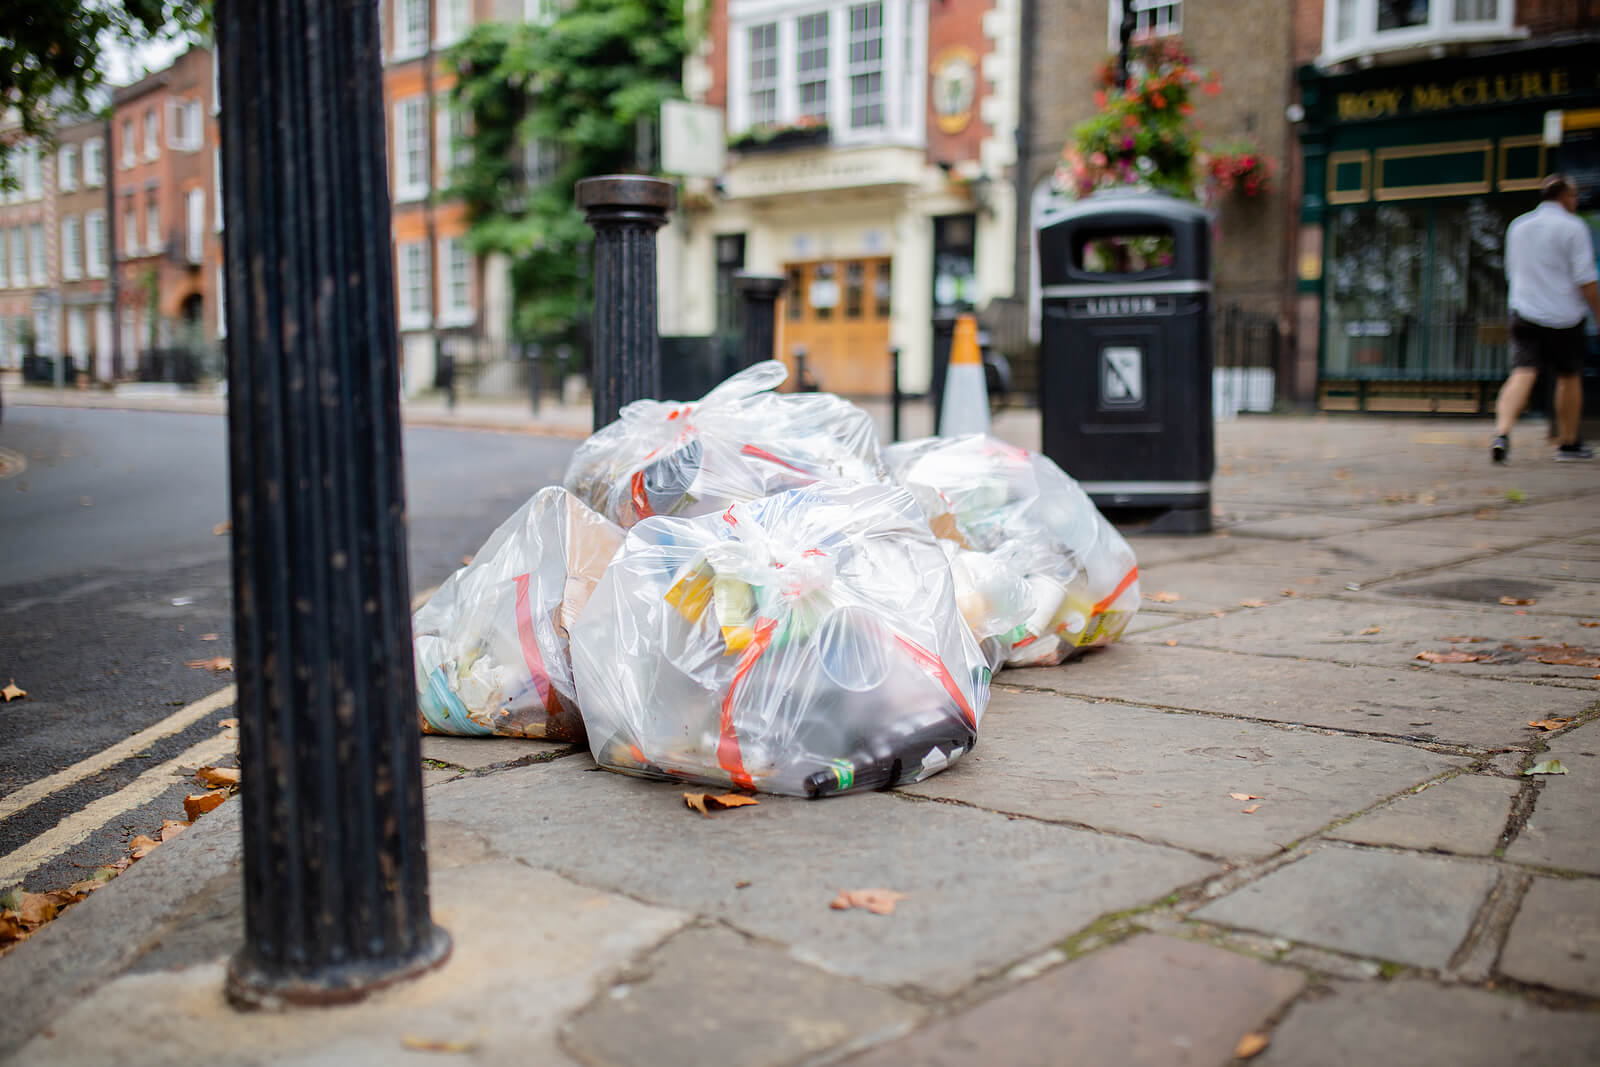 Bags of litter and rubbish collected on a street in a town centre